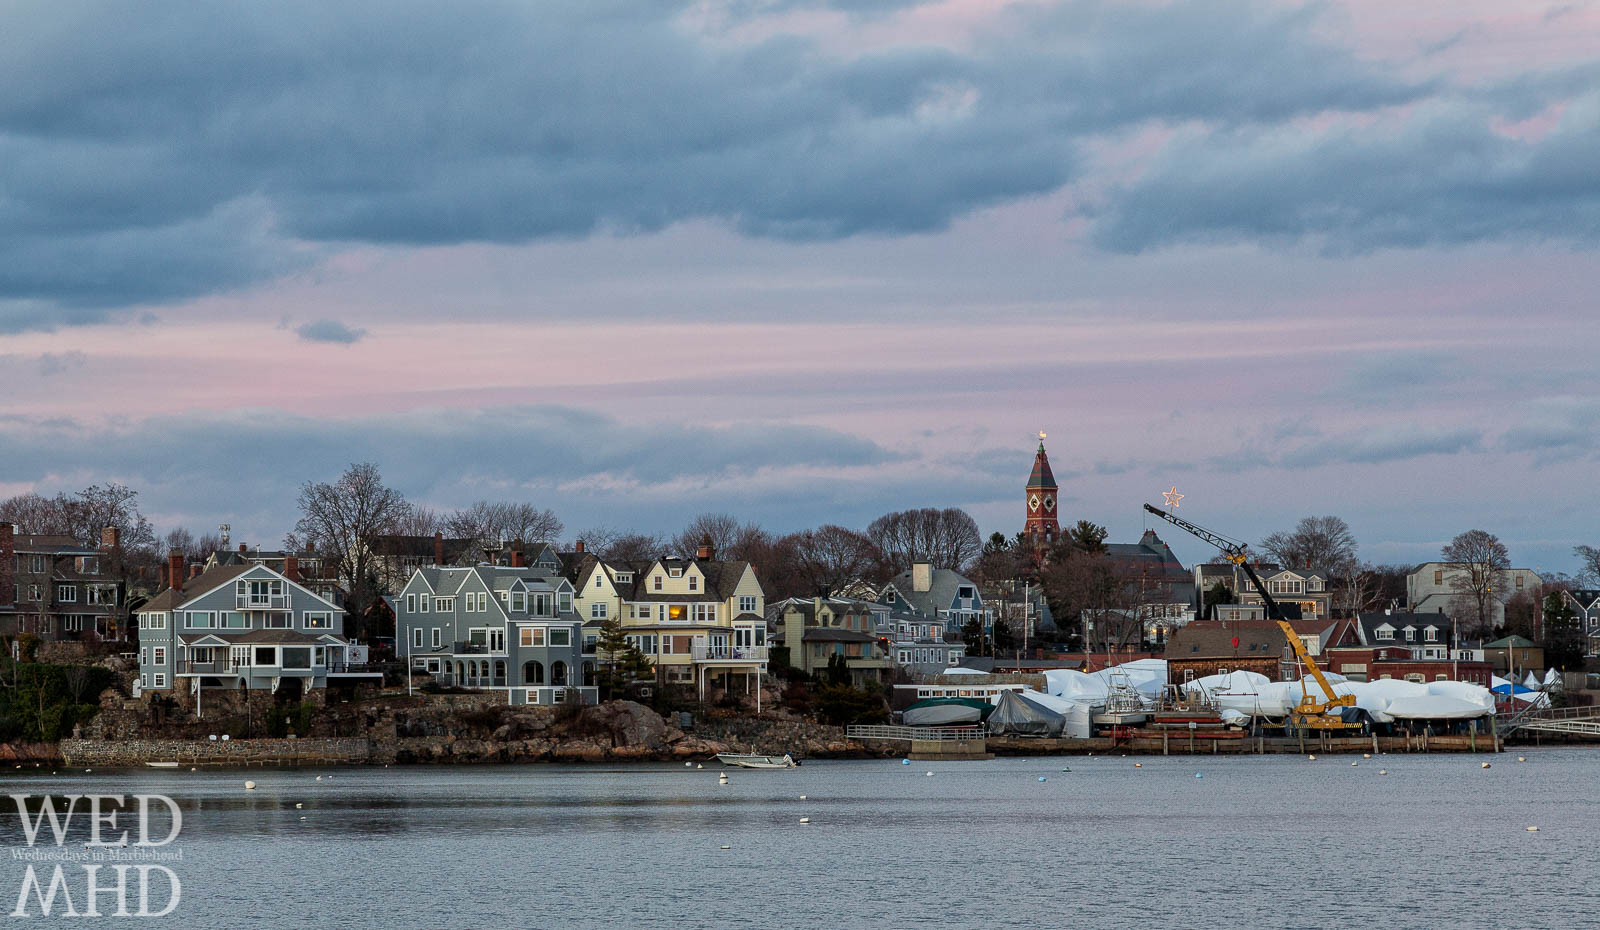 A shining star atop a crane hangs near Abbot Hall in this sunset view of Marblehead's skyline